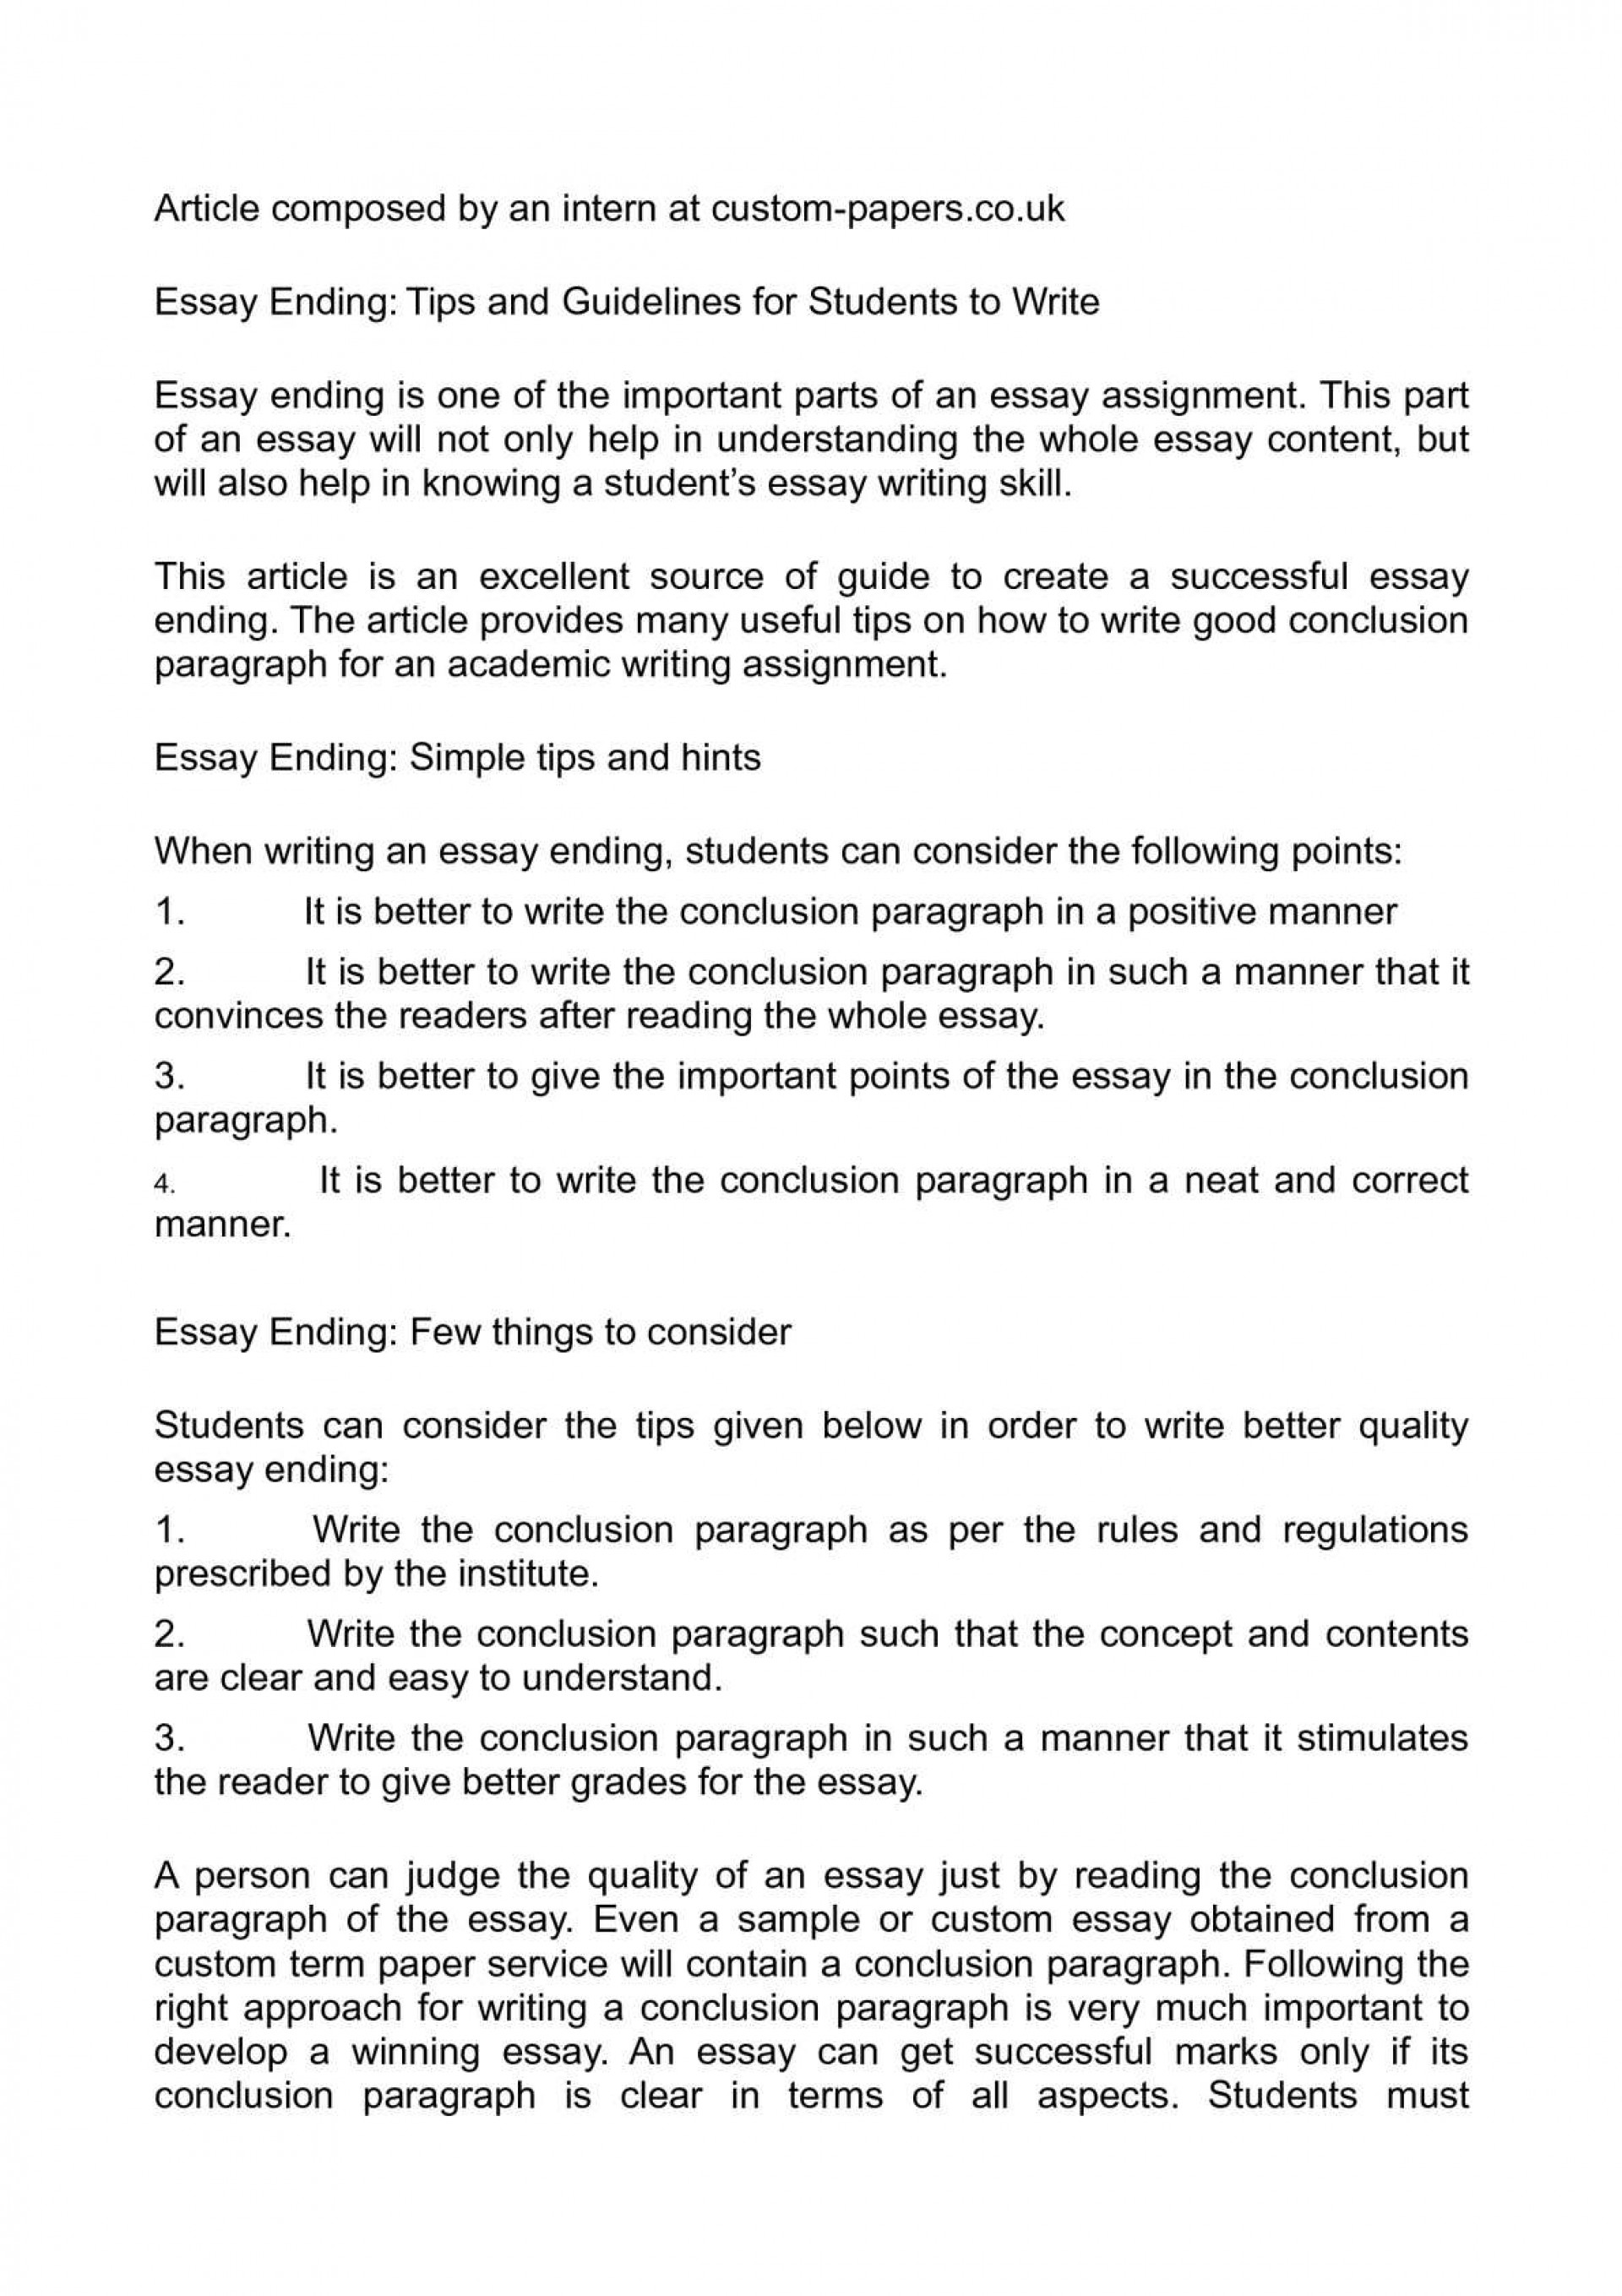 001 Parts Of An Essay Ending Tips And Guidelines For Students To Write Writing Persuasi Pdf Three Persuasive Stupendous Argumentative Ppt Worksheet Quiz 1920